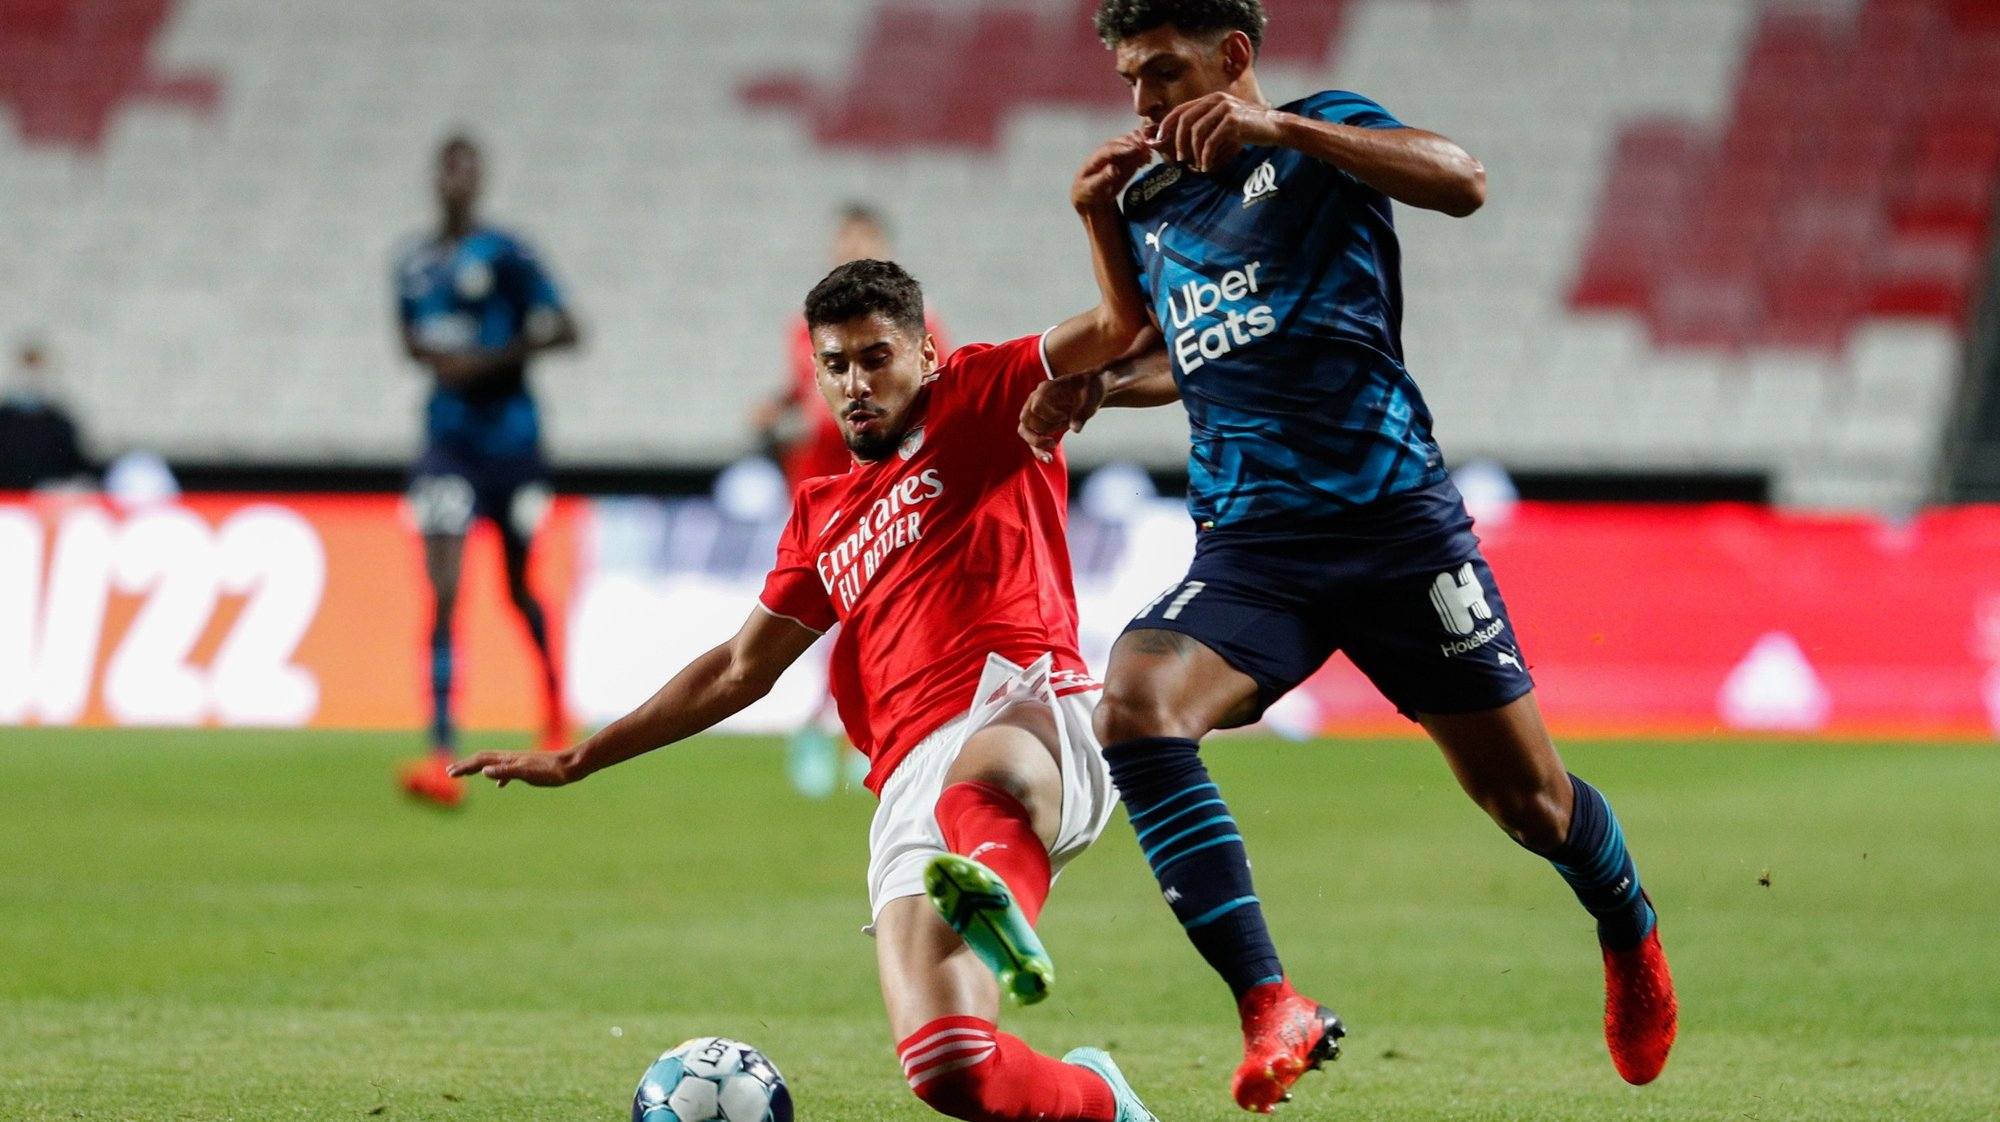 epa09365540 Benfica's player Gil Dias (L) in action against Olympique Marseille's player Luis Henrique (R), during the pre-season friendly test soccer match between Benfica and Olympique Marseille at Luz Stadium in Lisbon, Portugal, 25 July 2021.  EPA/ANTONIO COTRIM